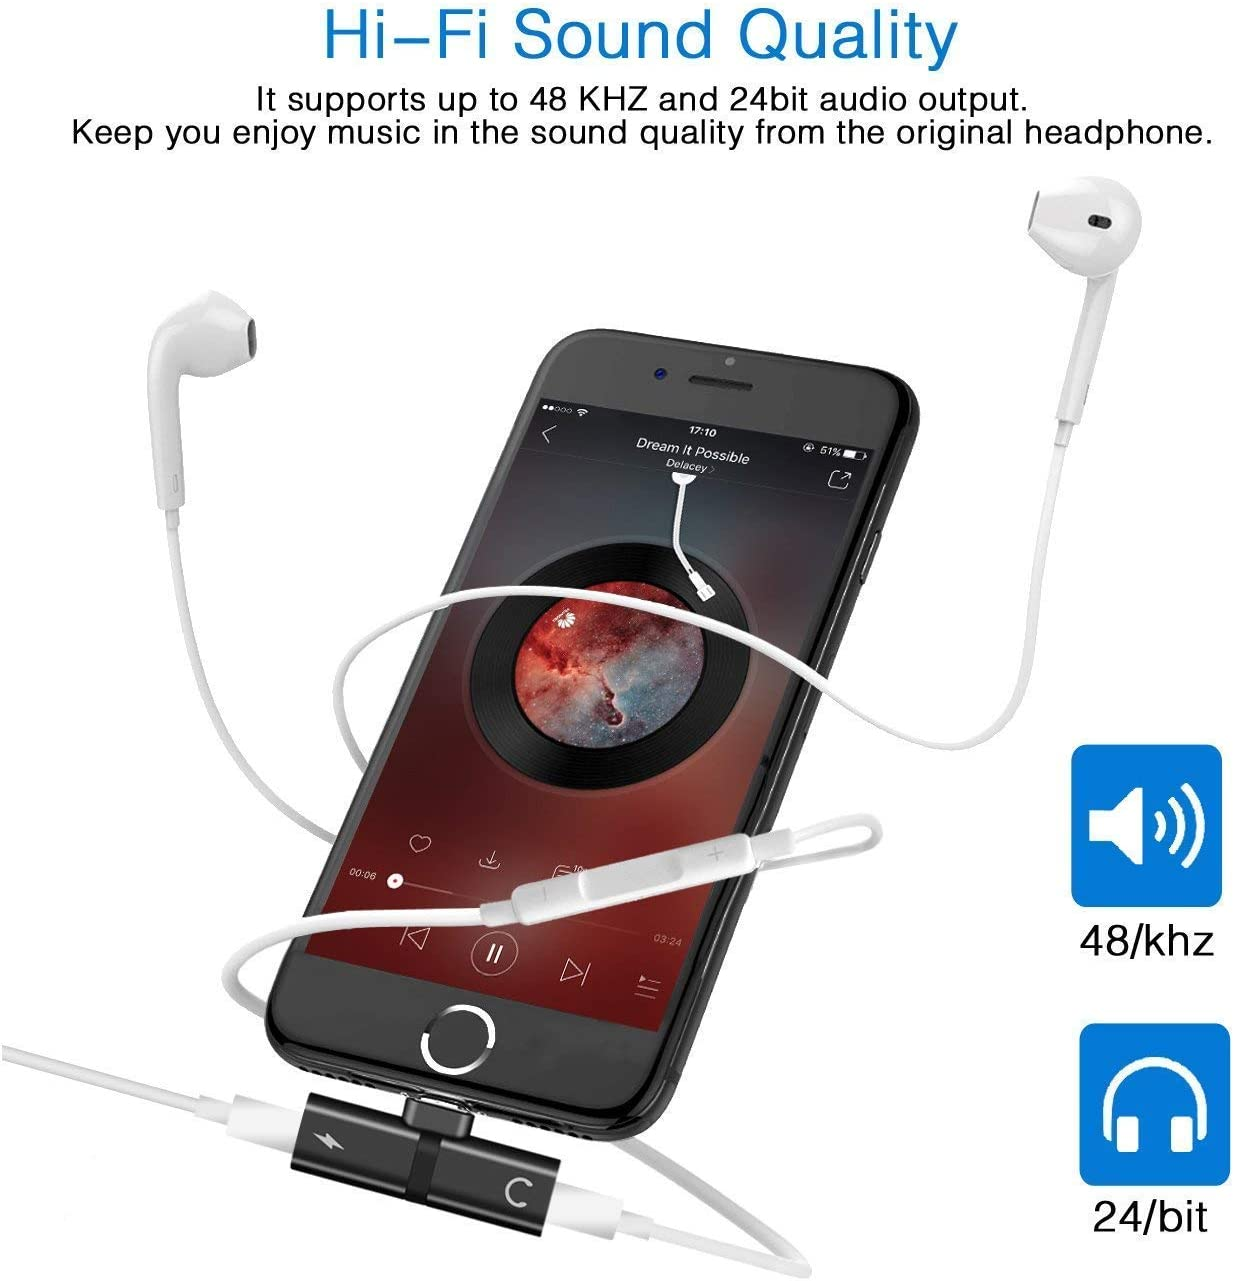 2 Packs 2 in 1 Dual Splitter Earphone Audio Cable Accessories Audio and Charger Aux Headset Adapter for iPhone Adapter Headphone Splitter for iPhone 7 8 Plus X Xs Max iOS 10.3 or Higher